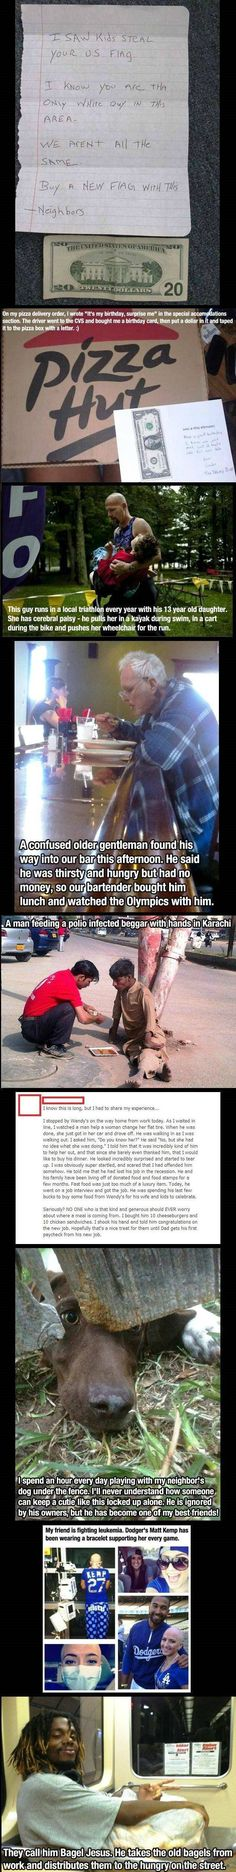 Restore Your Faith In Humanity. Some of these really touched my heart.